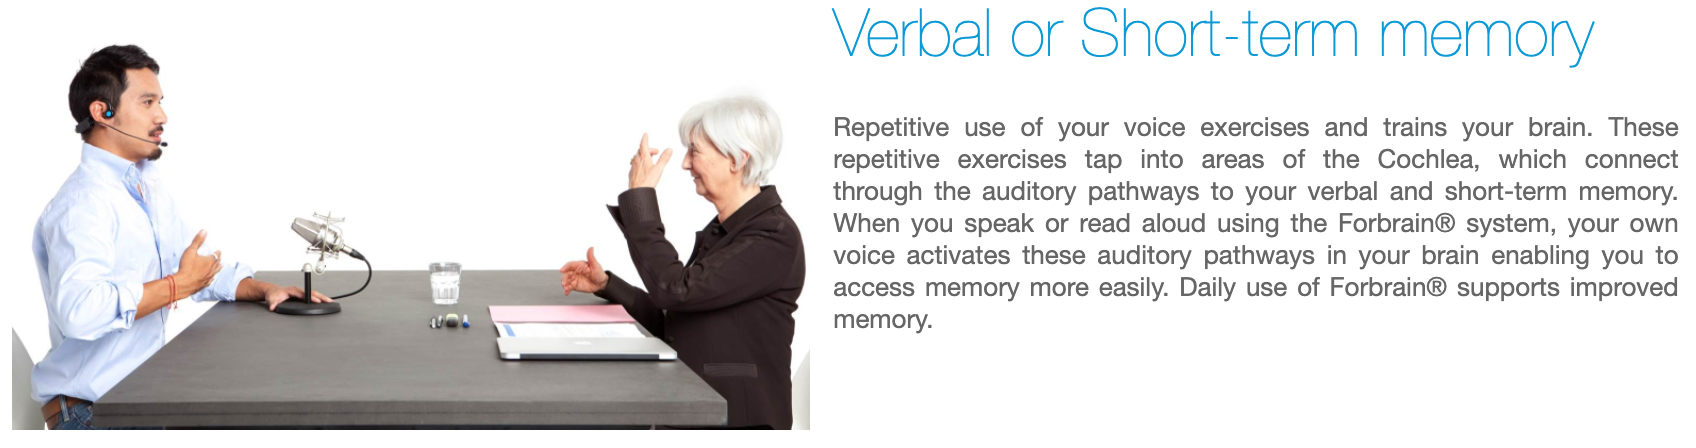 Forbrain - Verbal and Short Term Memory